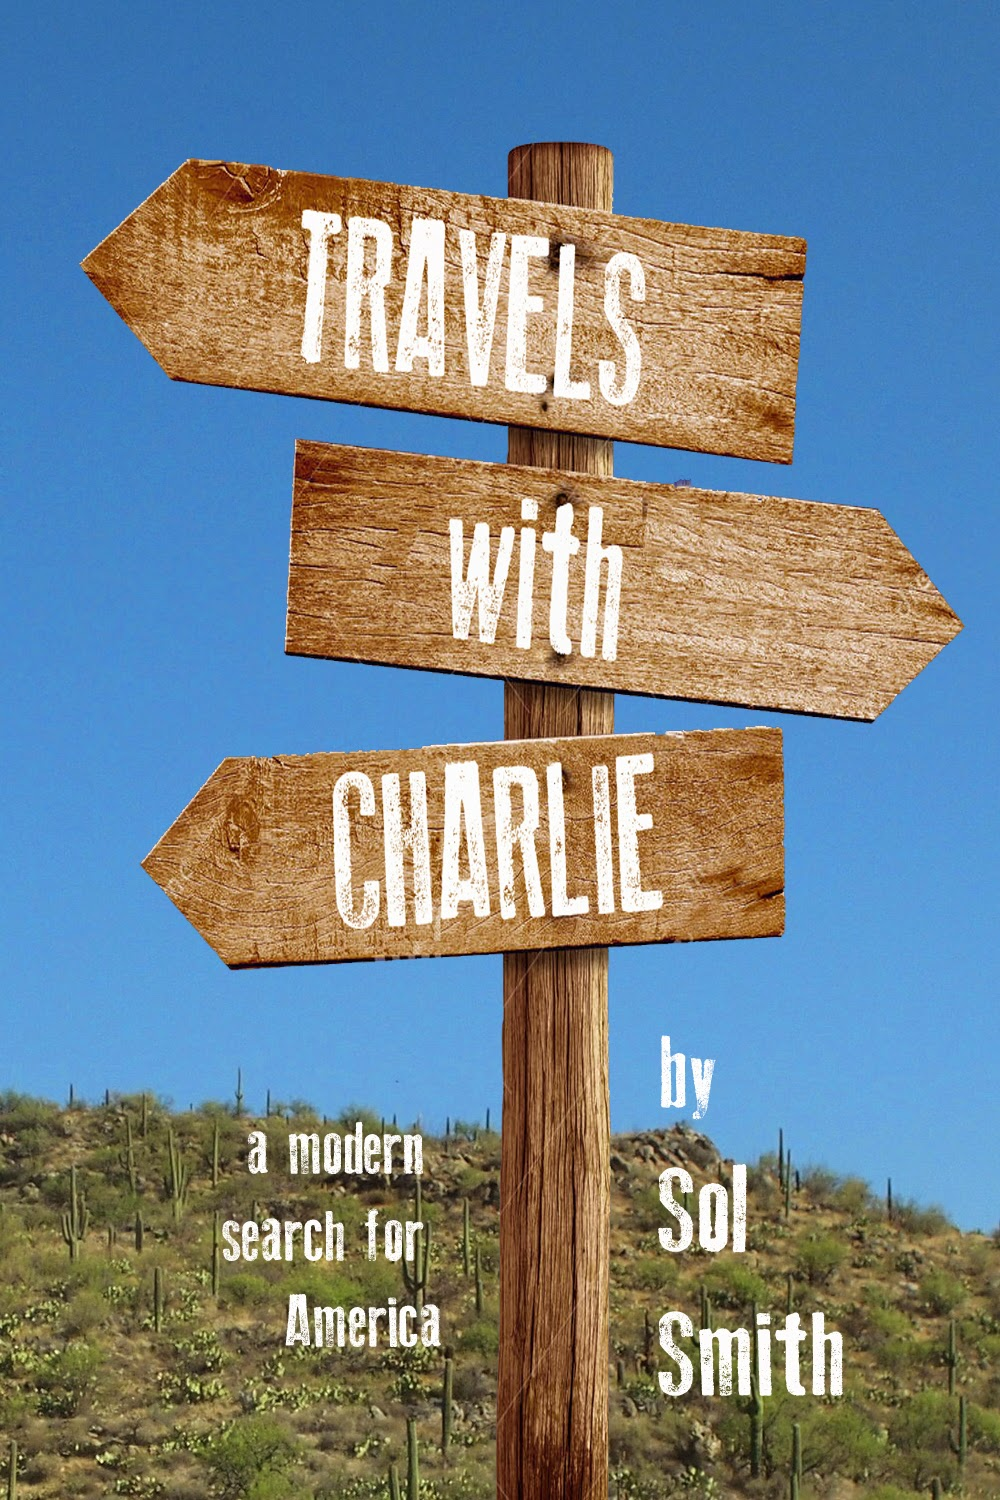 http://www.amazon.com/Travels-Charlie-Sol-Smith-ebook/dp/B00NCSAVYM/ref=la_B007UAYCG6_1_1?s=books&ie=UTF8&qid=1410666183&sr=1-1